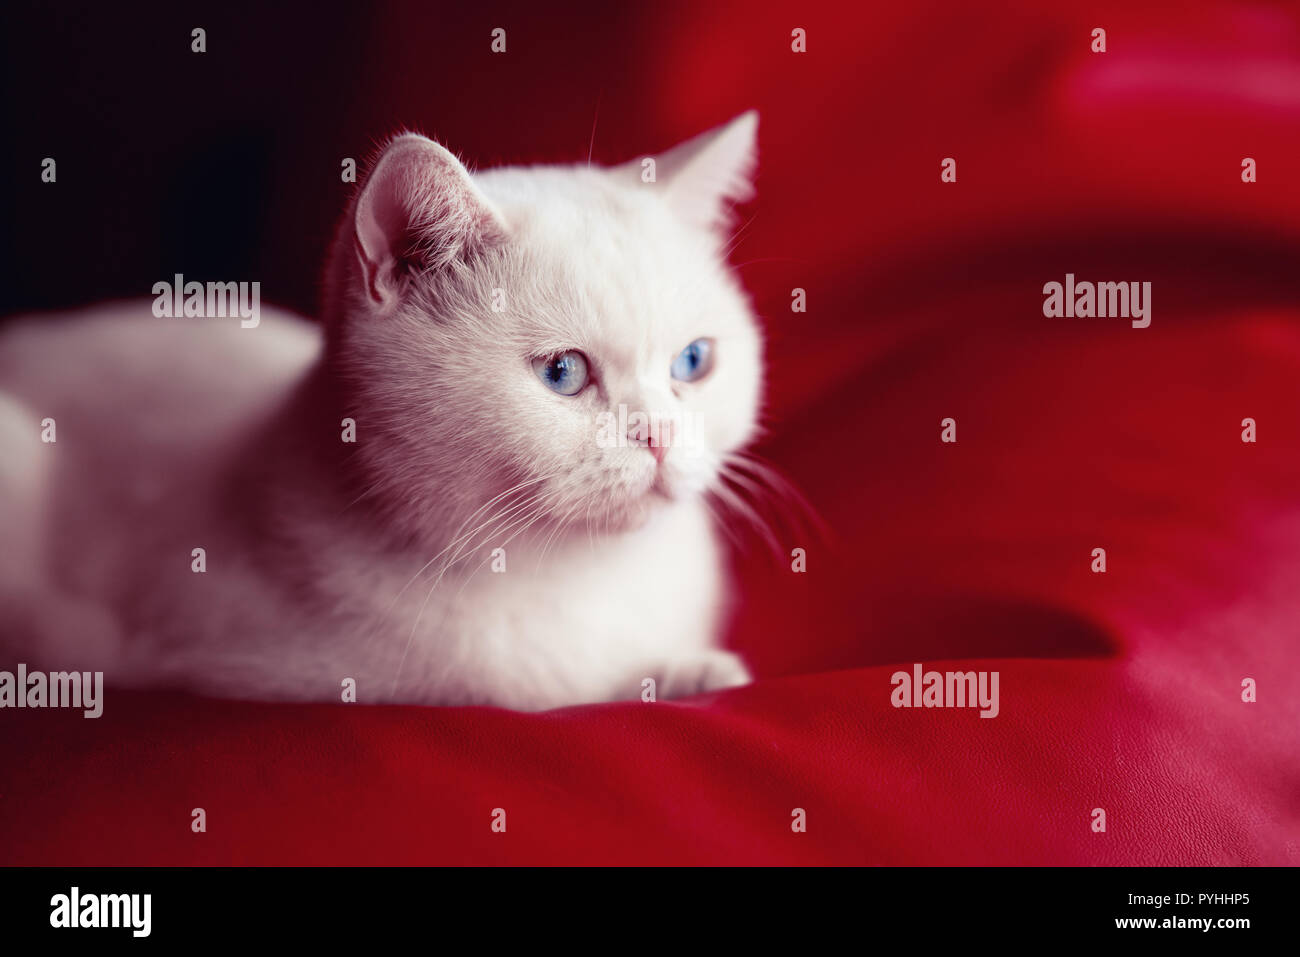 Persian cat, sitting in front of red background - Stock Image